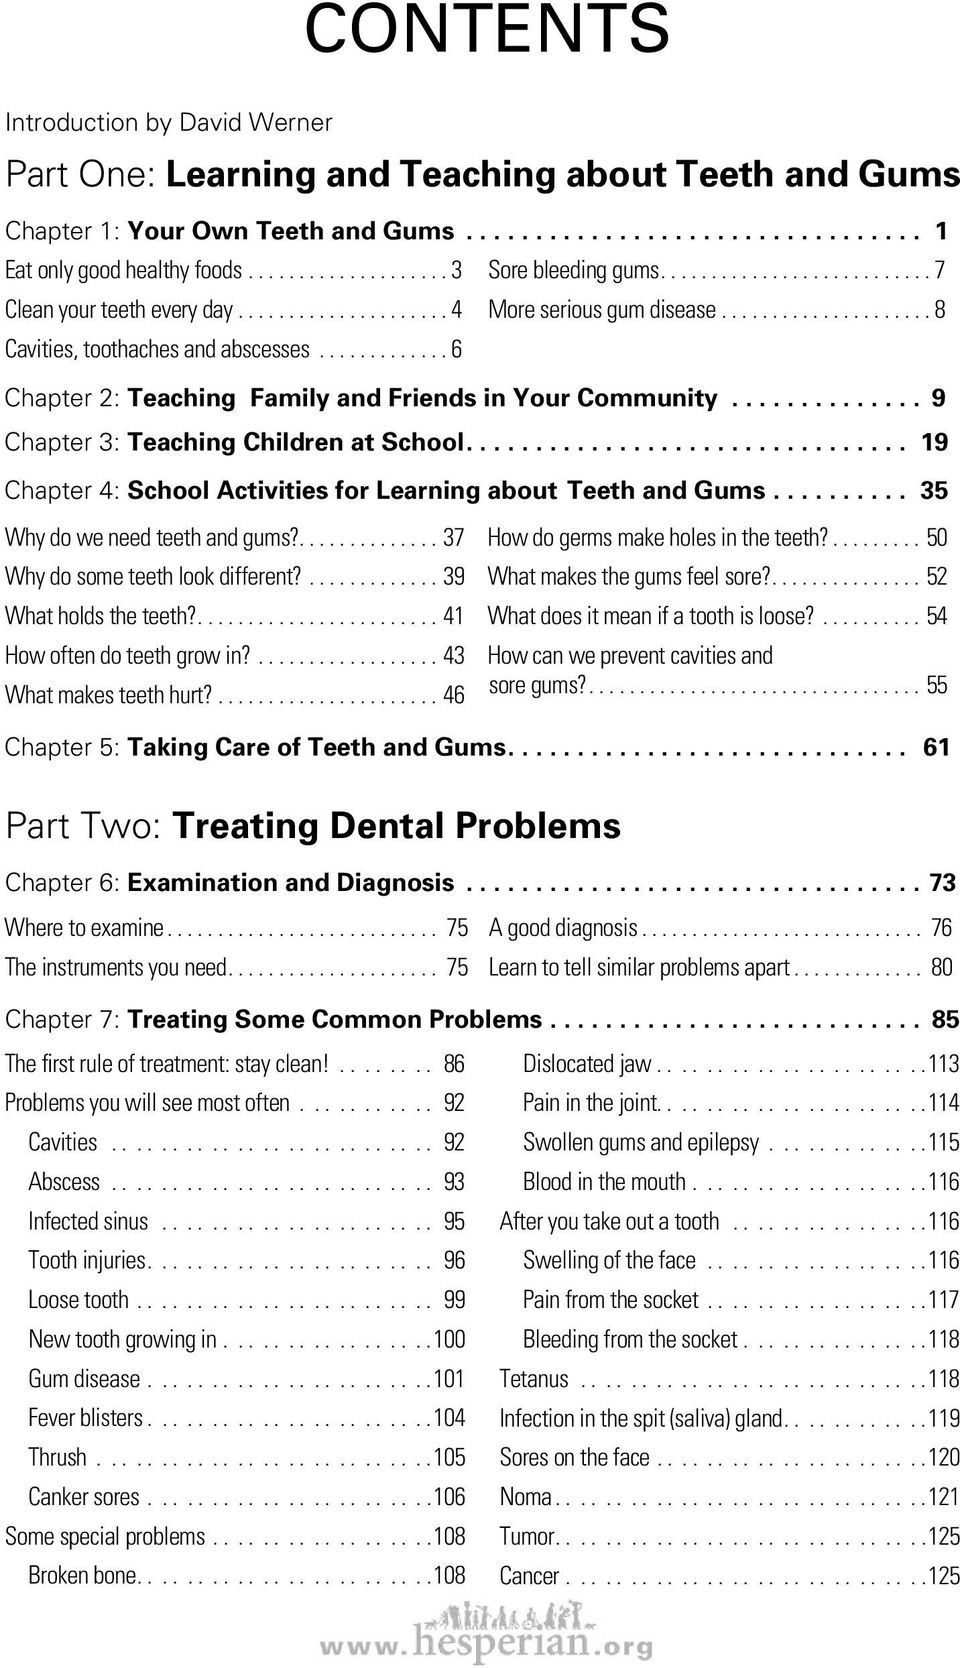 ............ 6 Chapter 2: Teaching Family and Friends in Your Community............... 9 Chapter 3: Teaching Children at School................................ 19 Chapter 4: School Activities for Learning about Teeth and Gums.